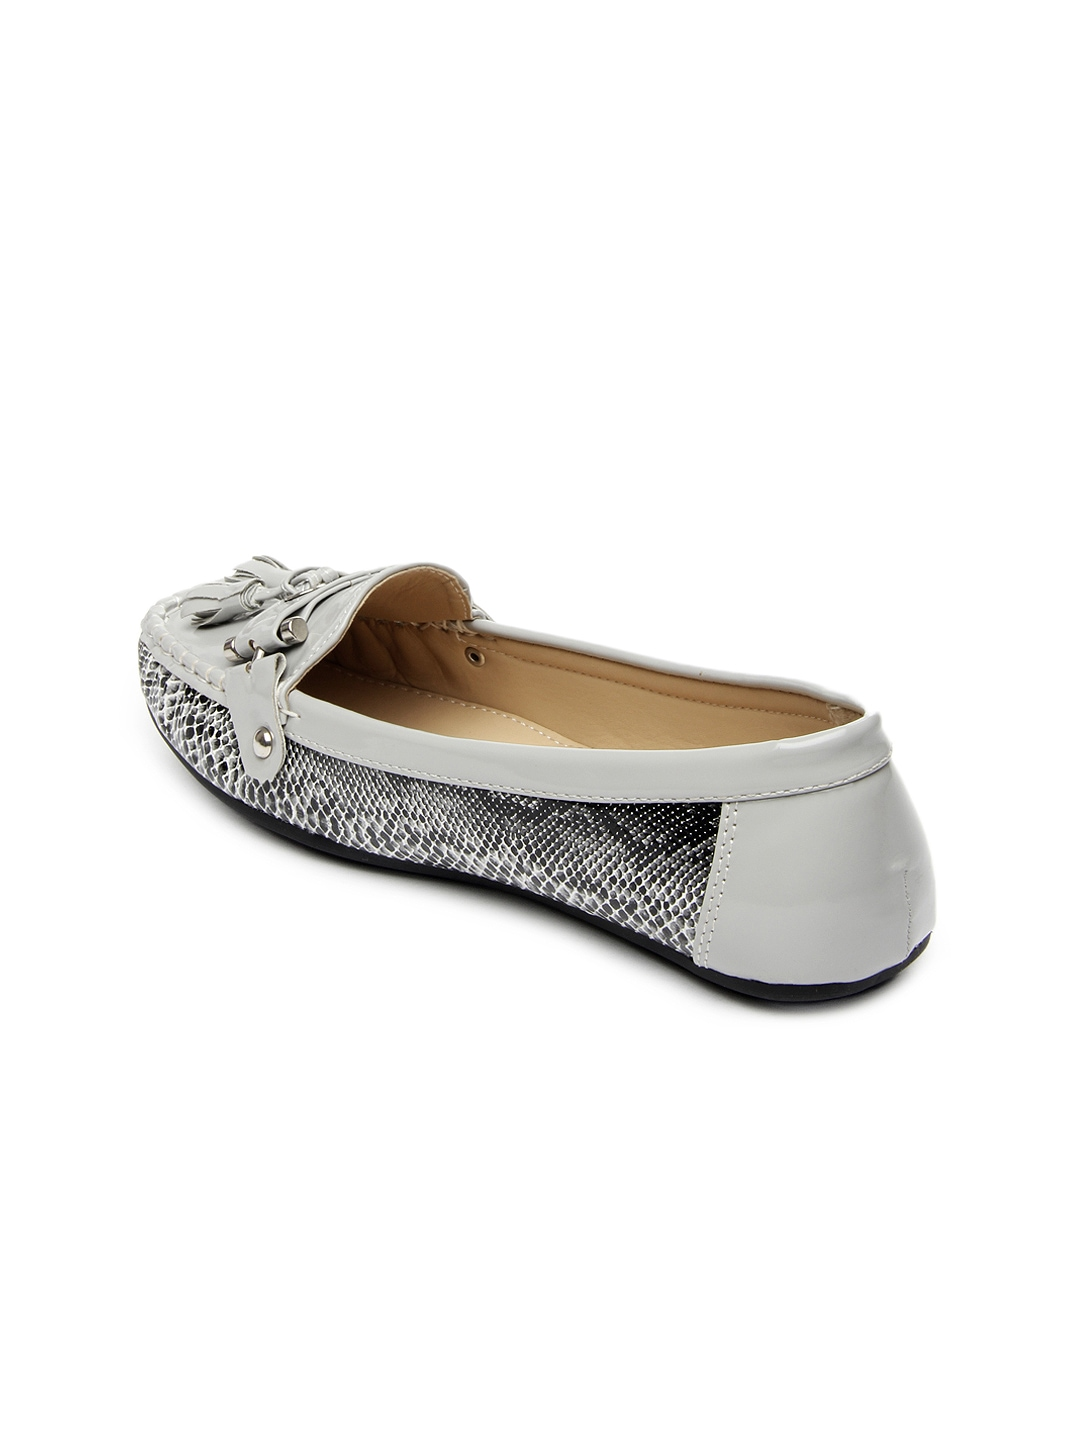 Grey Shoes Sale: Save Up to 80% Off! Shop russia-youtube.tk's huge selection of Grey Shoes - Over 4, styles available. FREE Shipping & Exchanges, and a % price guarantee!